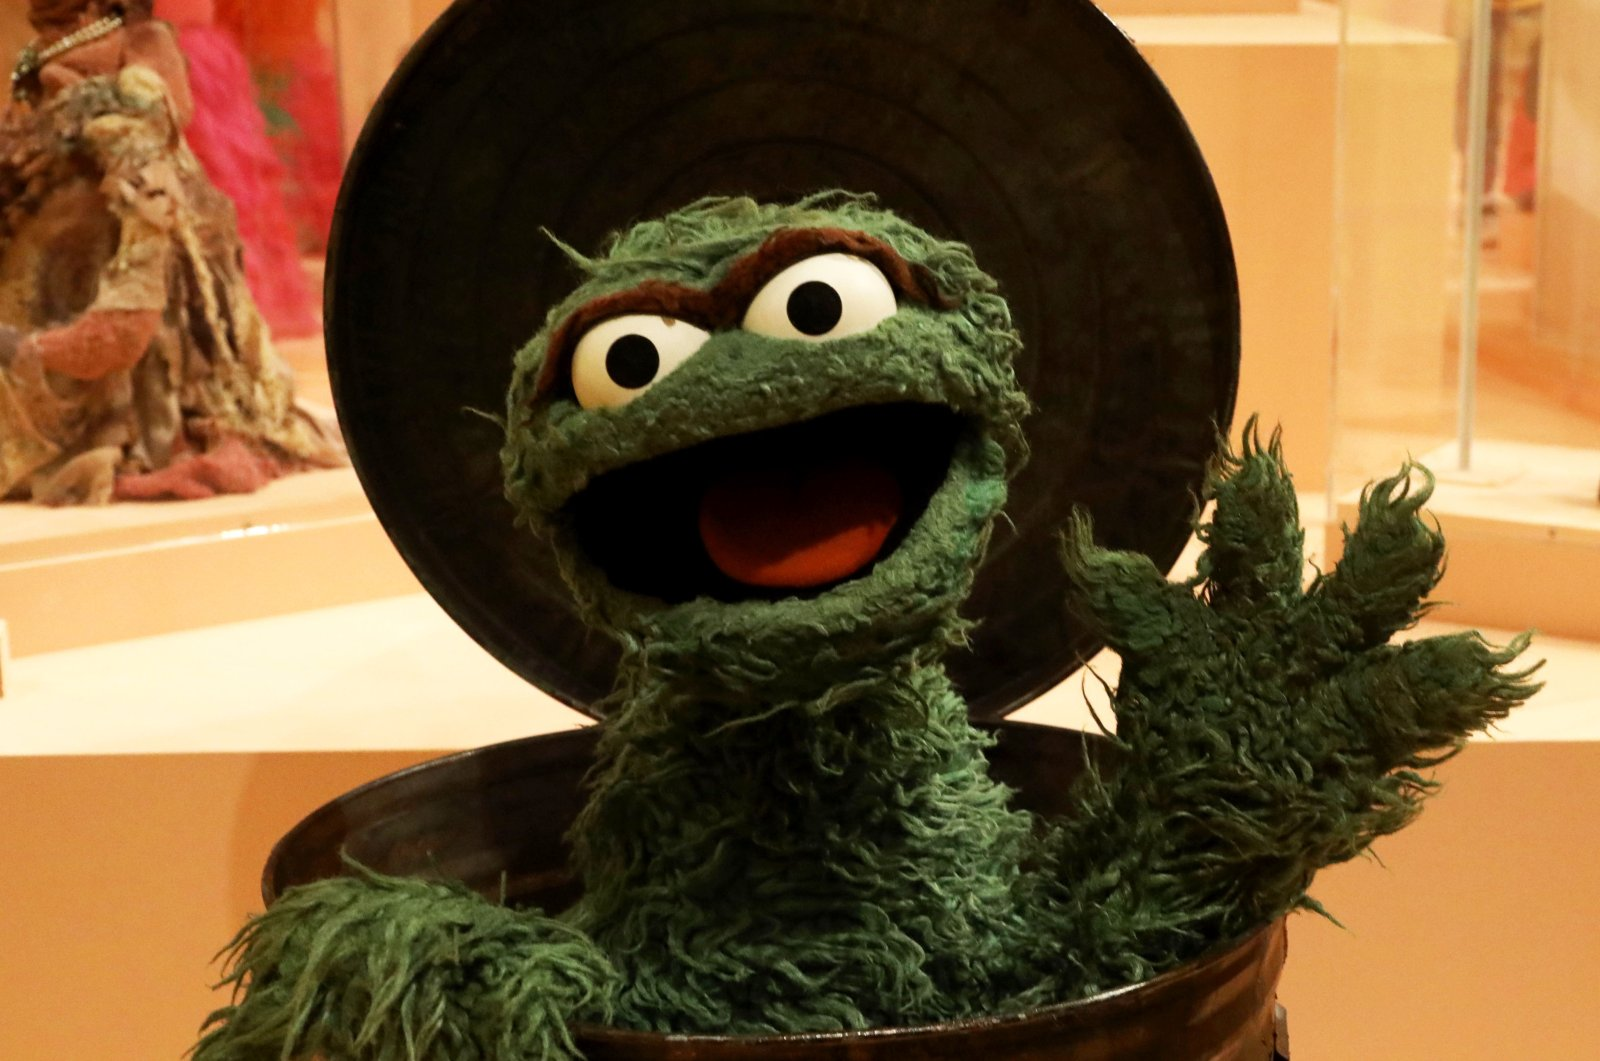 No puppet exhibition would be complete without Oscar the Grouch:The Jim Henson puppet created for Sesame Street is among those at the Puppets of New York show at The Museum of City of New York, New York, U.S. (DPA Photo)